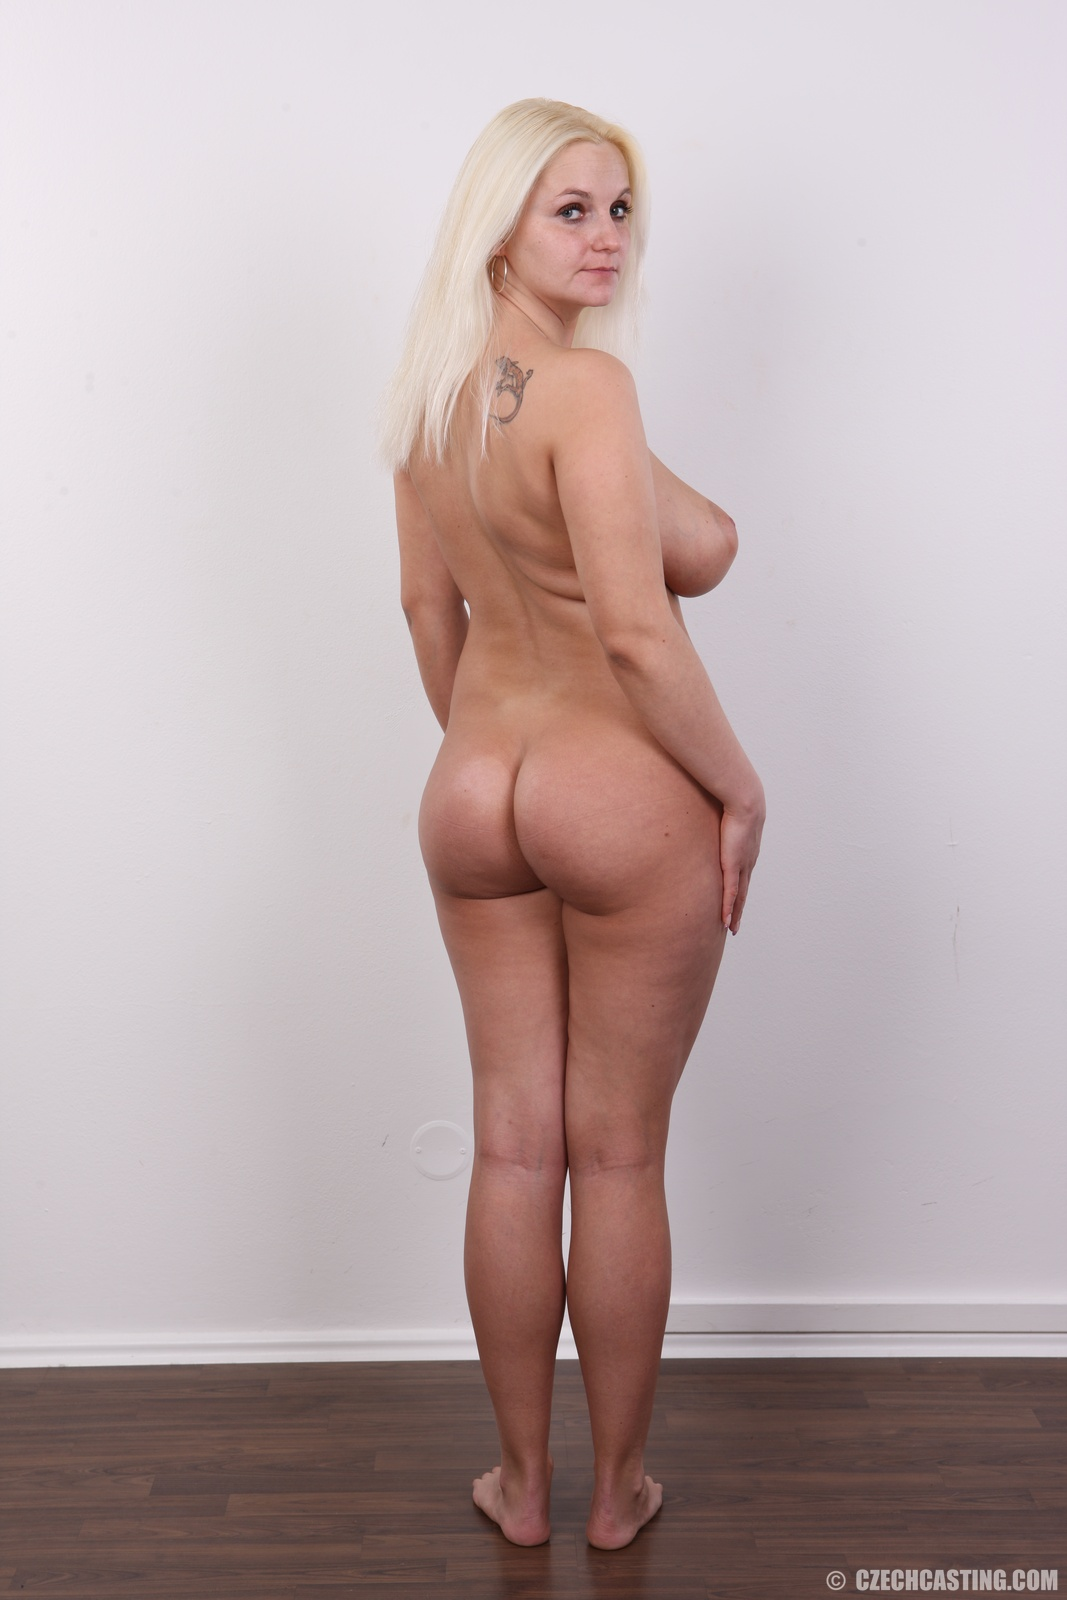 Rather You Dana czech casting milf there's nothing